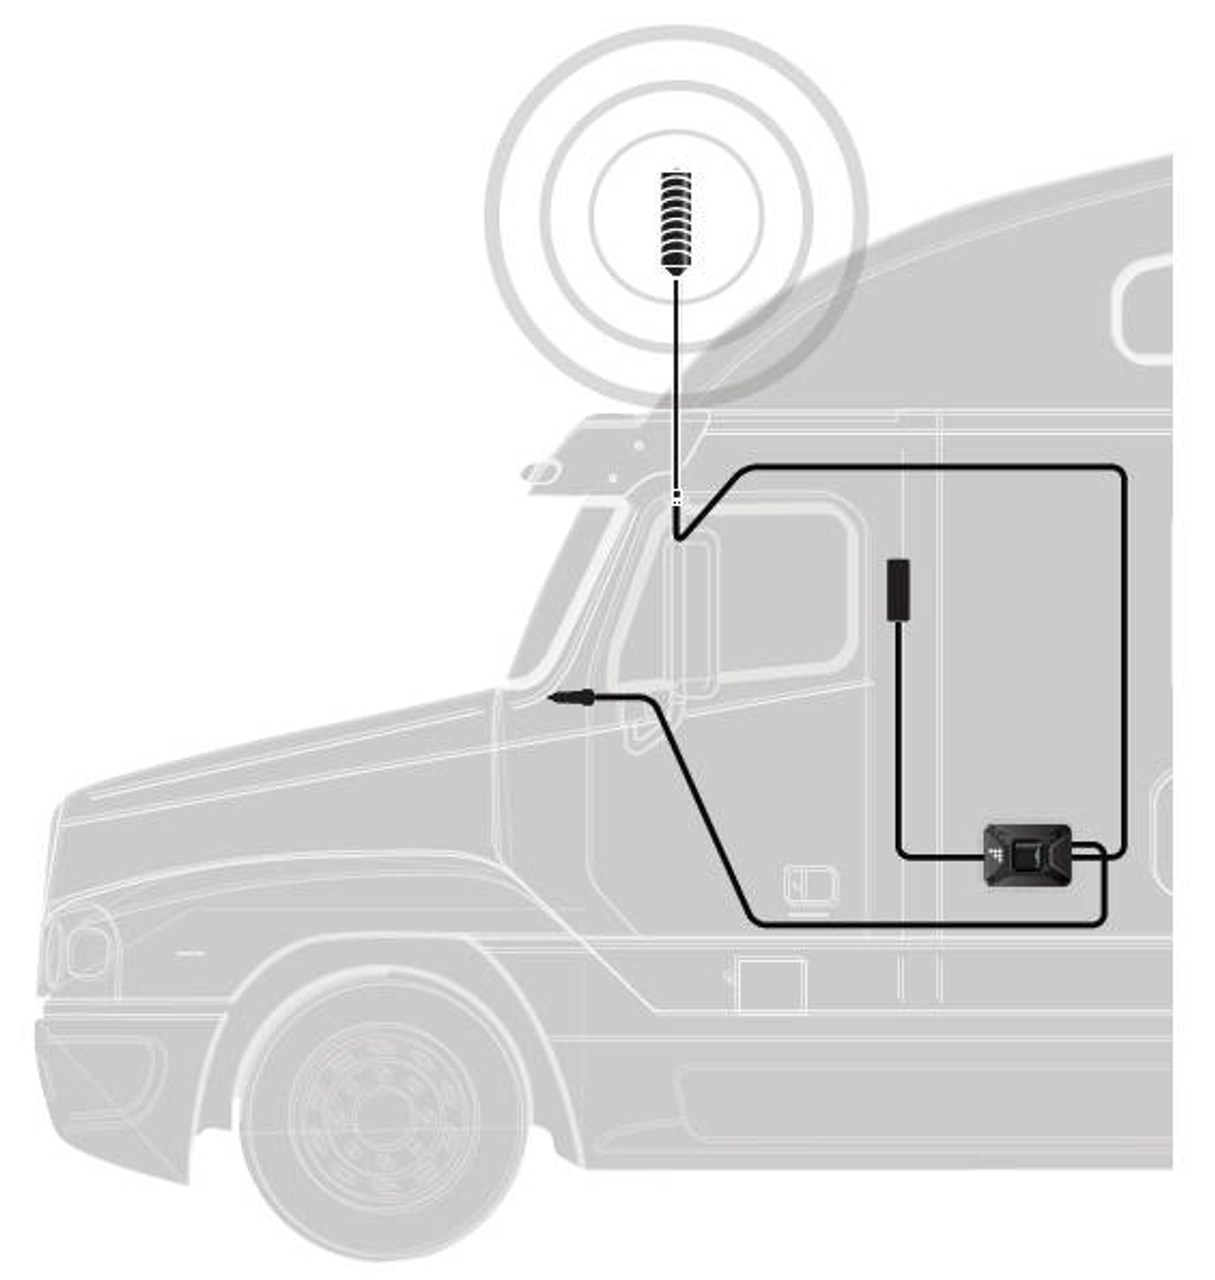 hight resolution of weboost drive 4g x otr truck signal booster system diagram